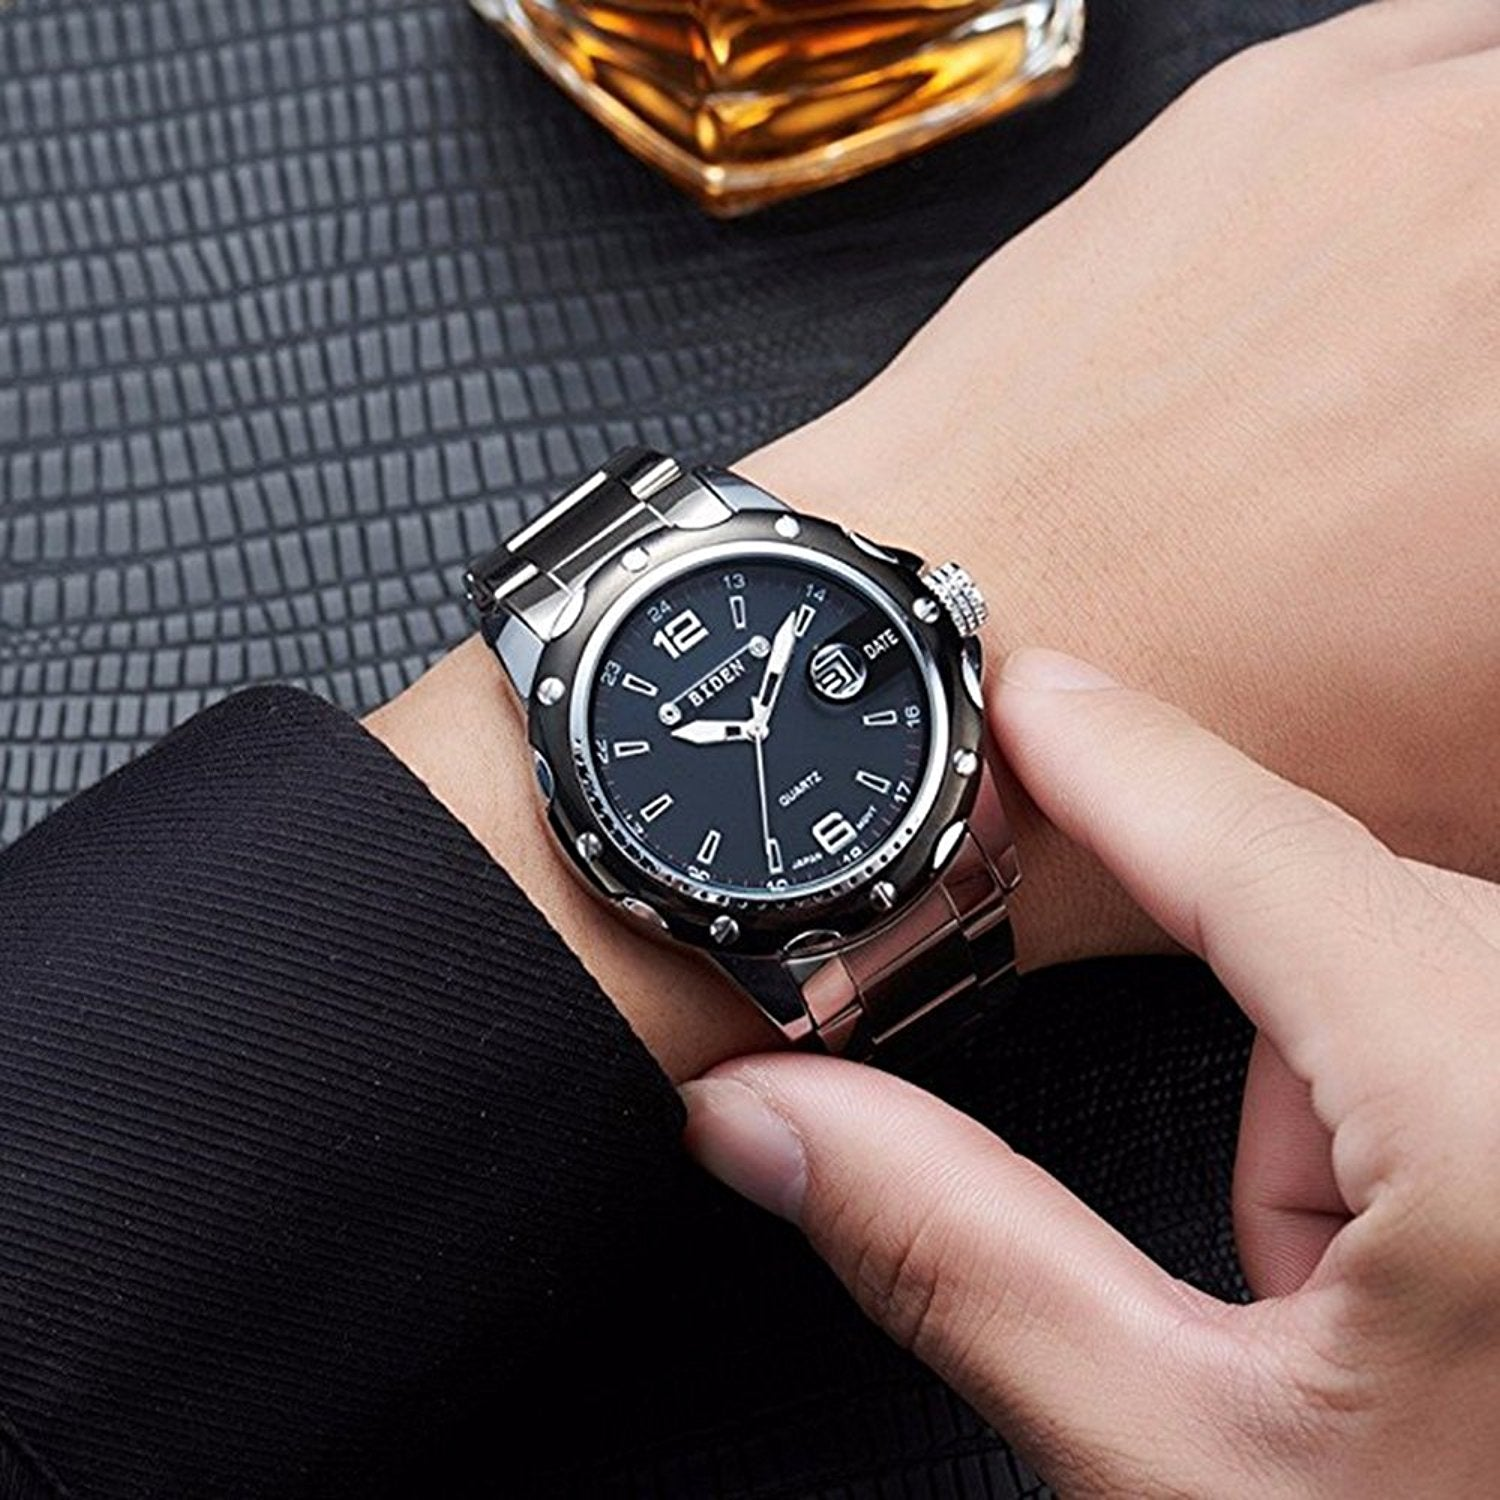 brand clearance watch relogio waterproof fotina black business watches men jk clock white luxury masculino item dress gold steel quartz full